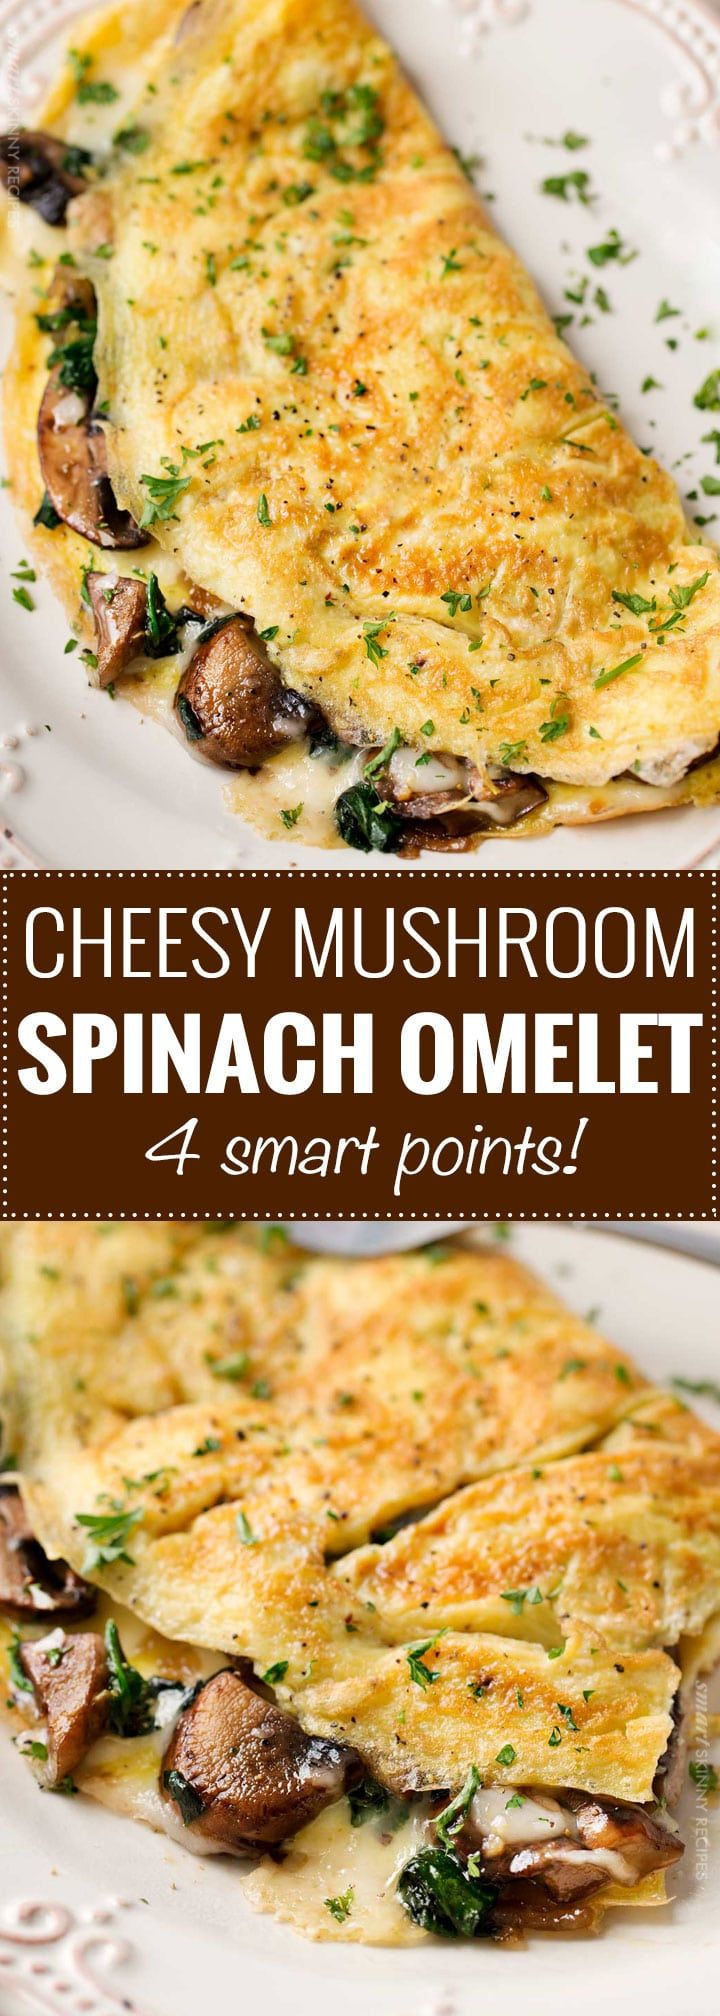 Start off your day in a tasty way with this cheesy mushroom and spinach omelet. Easy to make, and tastes like you got it from a fancy restaurant!